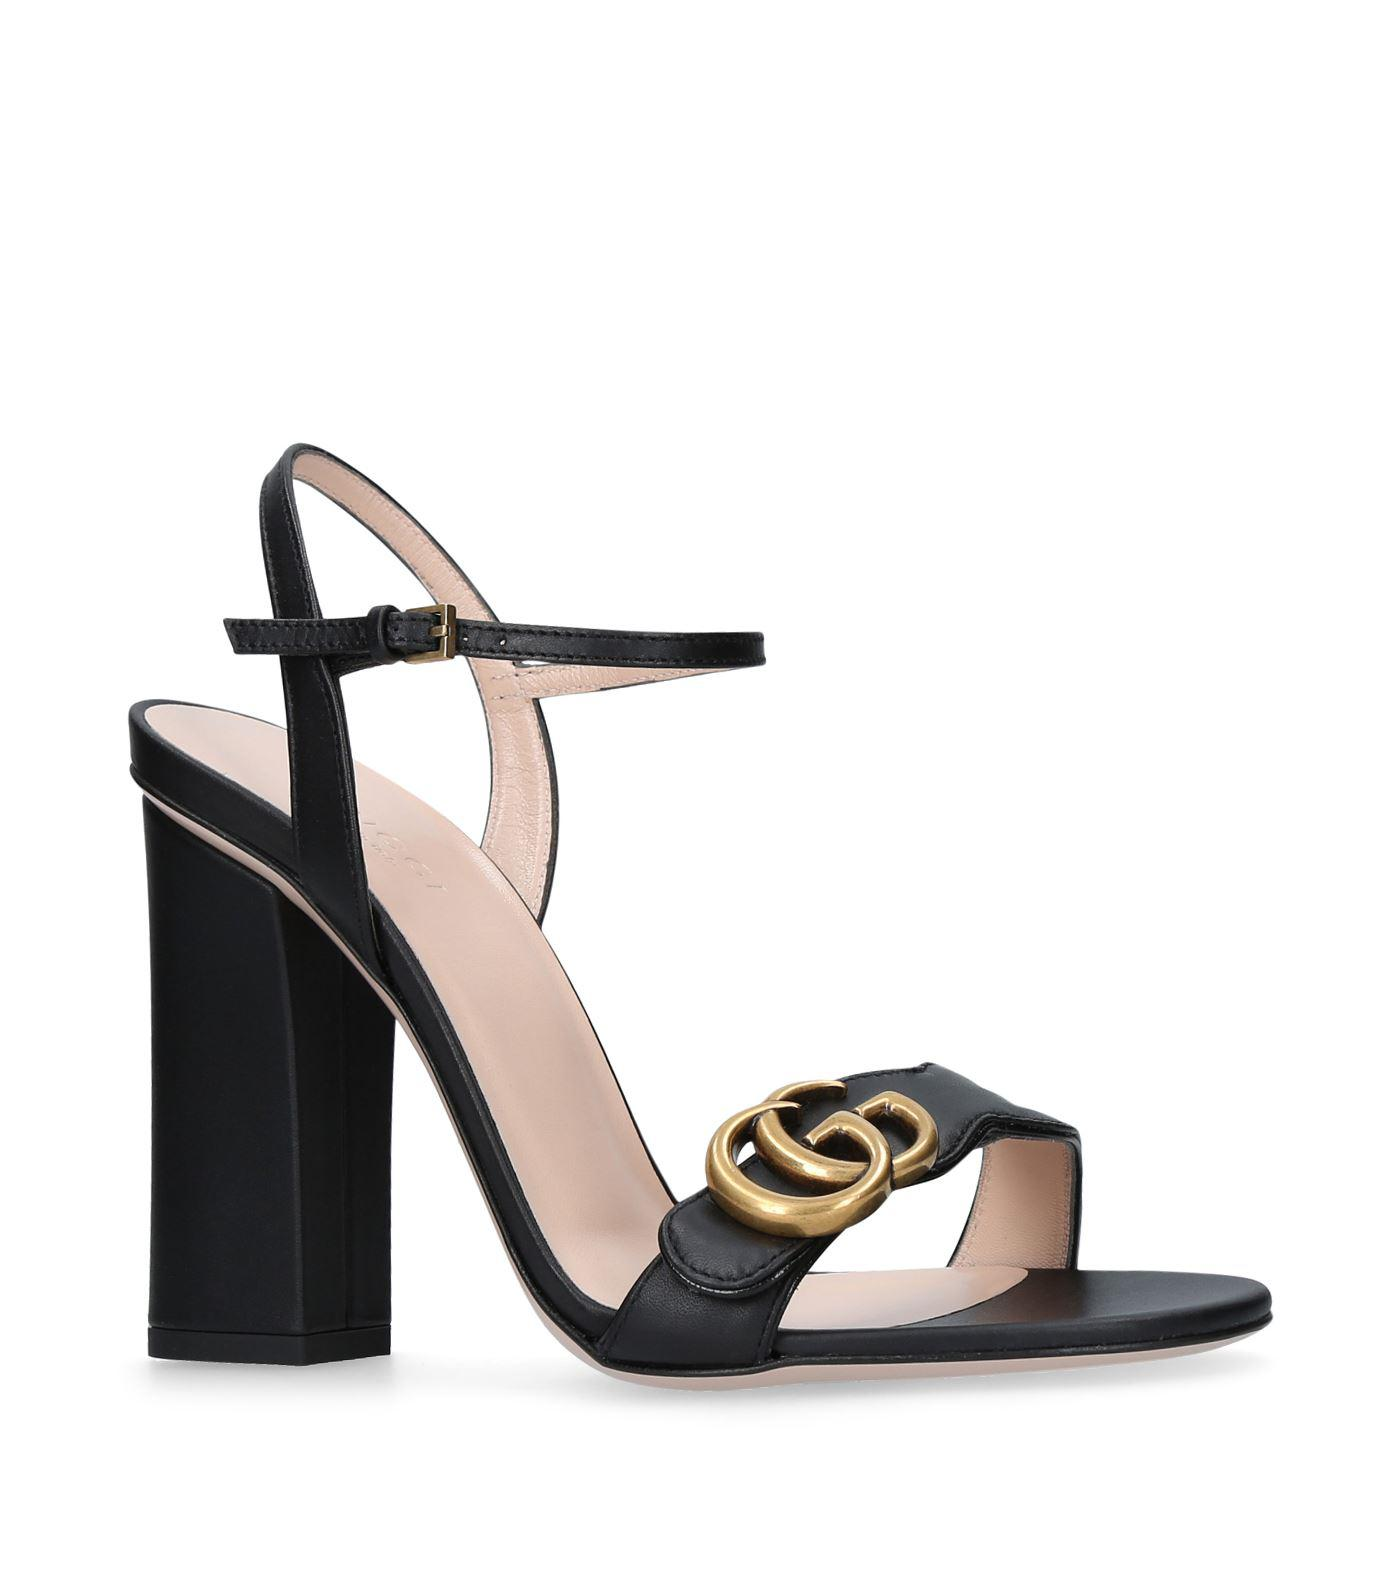 8e7b30eb9a5c60 Gucci Marmont 105 Leather Sandals in Black - Lyst